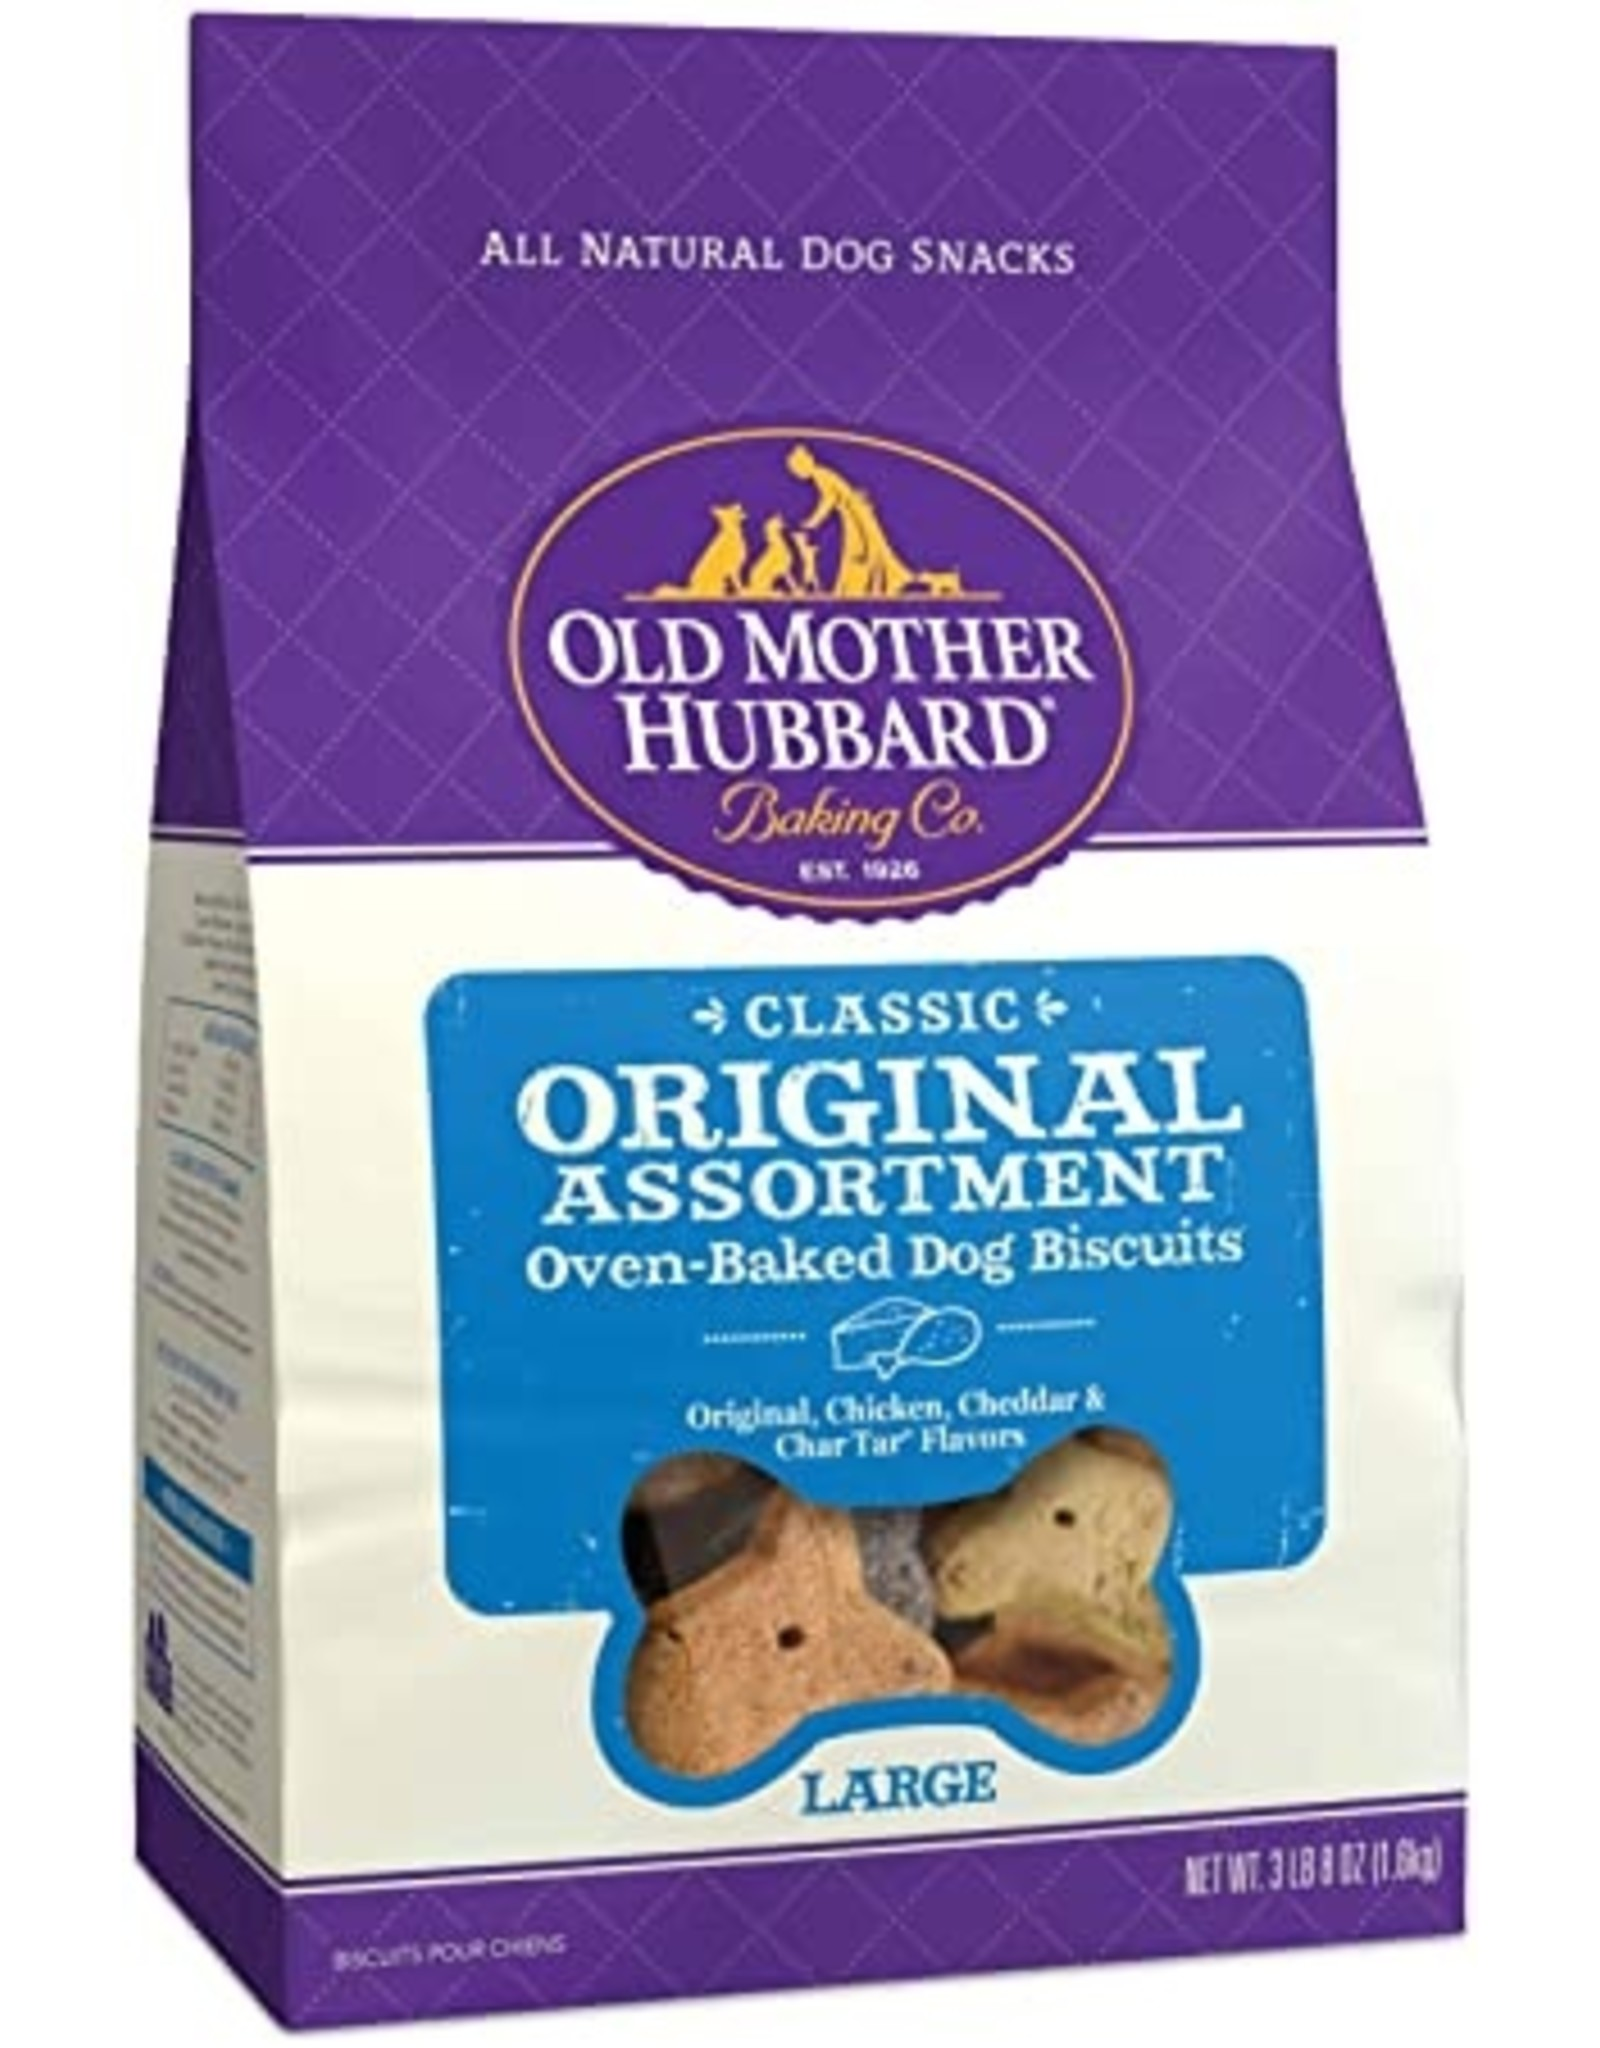 Old Mother Hubbard Old Mother Hubbard Classic Original Assortment Oven Baked Dog Biscuits Large 3lbs - Original, Chicken, Cheddar, Char-Tar